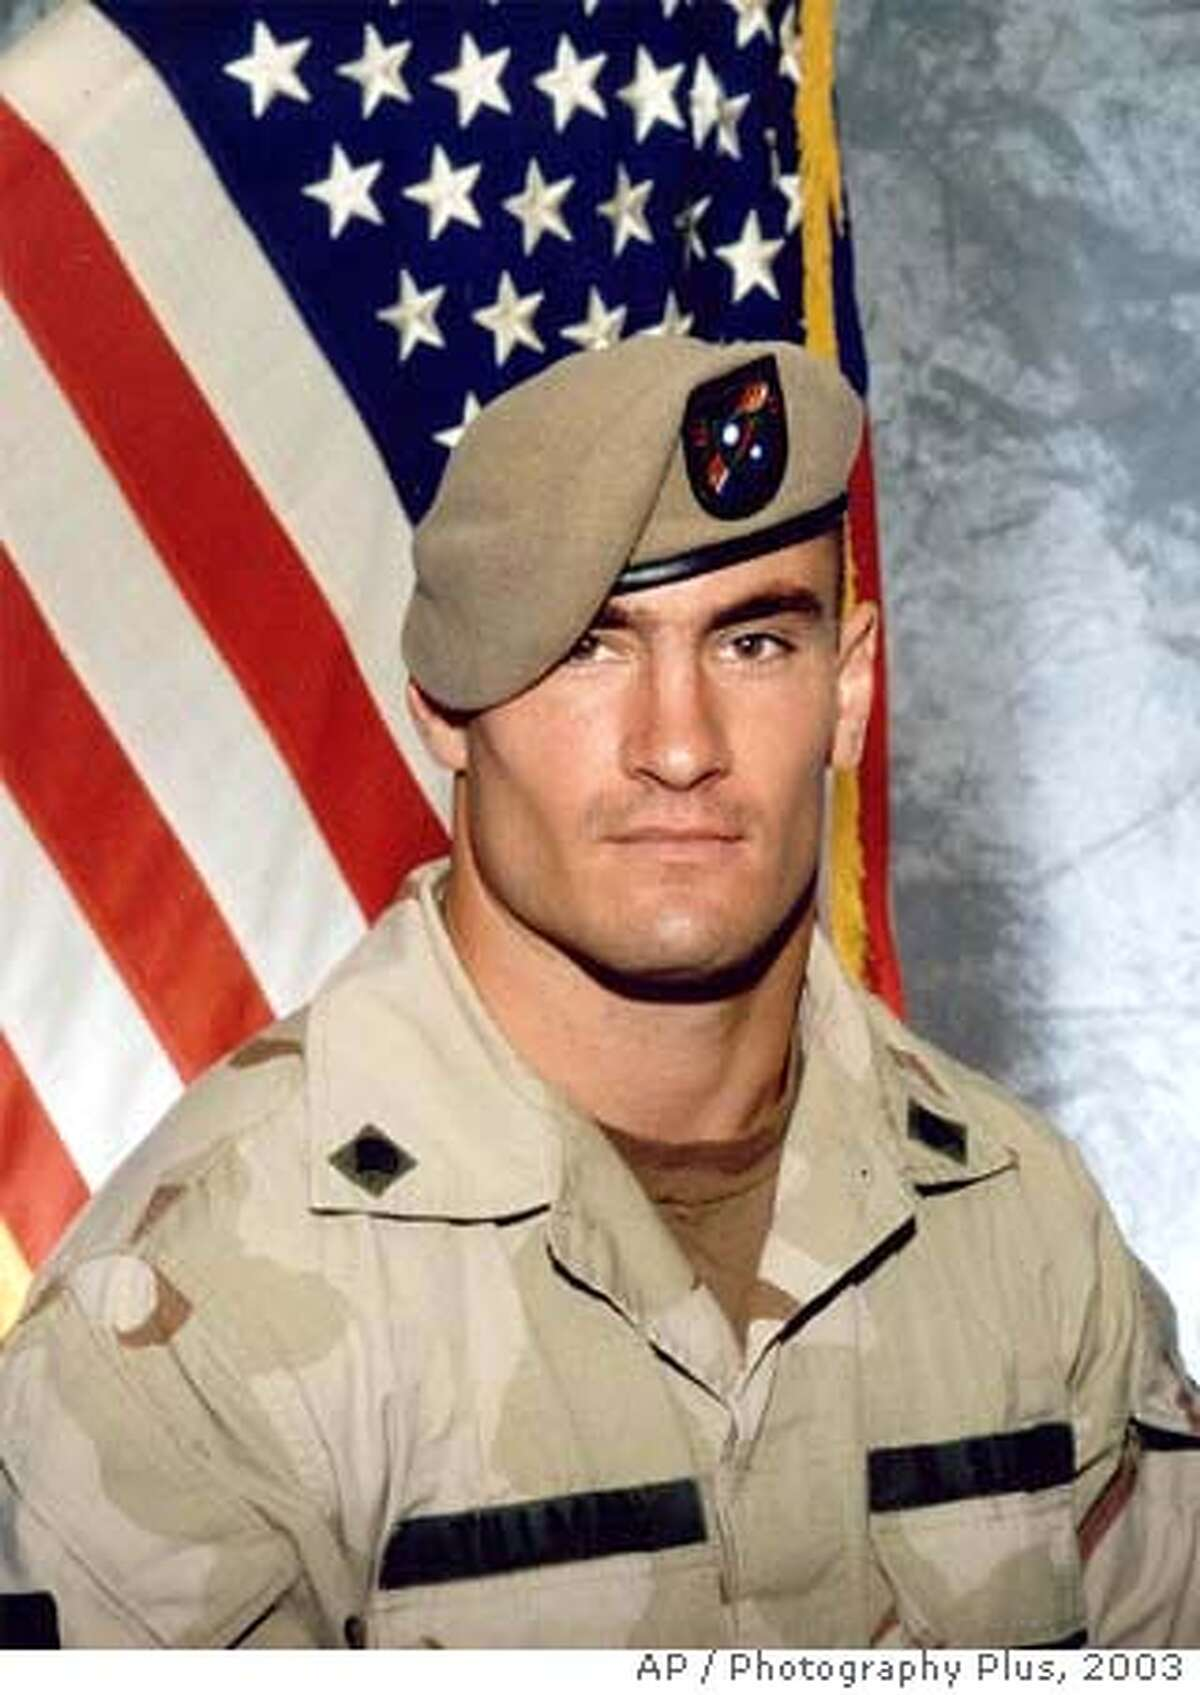 ** FILE ** Cpl. Pat Tillman is seen in a this 2003 file photo provided by Photography Plus. A House committee has scheduled hearings on the string of misleading statements by the military following the friendly fire death of Pat Tillman in Afghanistan and the kidnapping and rescue of Pvt. Jessica Lynch in Iraq, congressional officials said Tuesday, April 10, 2007. (AP Photo/Photography Plus via Williamson Stealth Media Solutions, FILE) 2003 FILE PHOTO PROVIDED BY PHOTOGRAPHY PLUS.